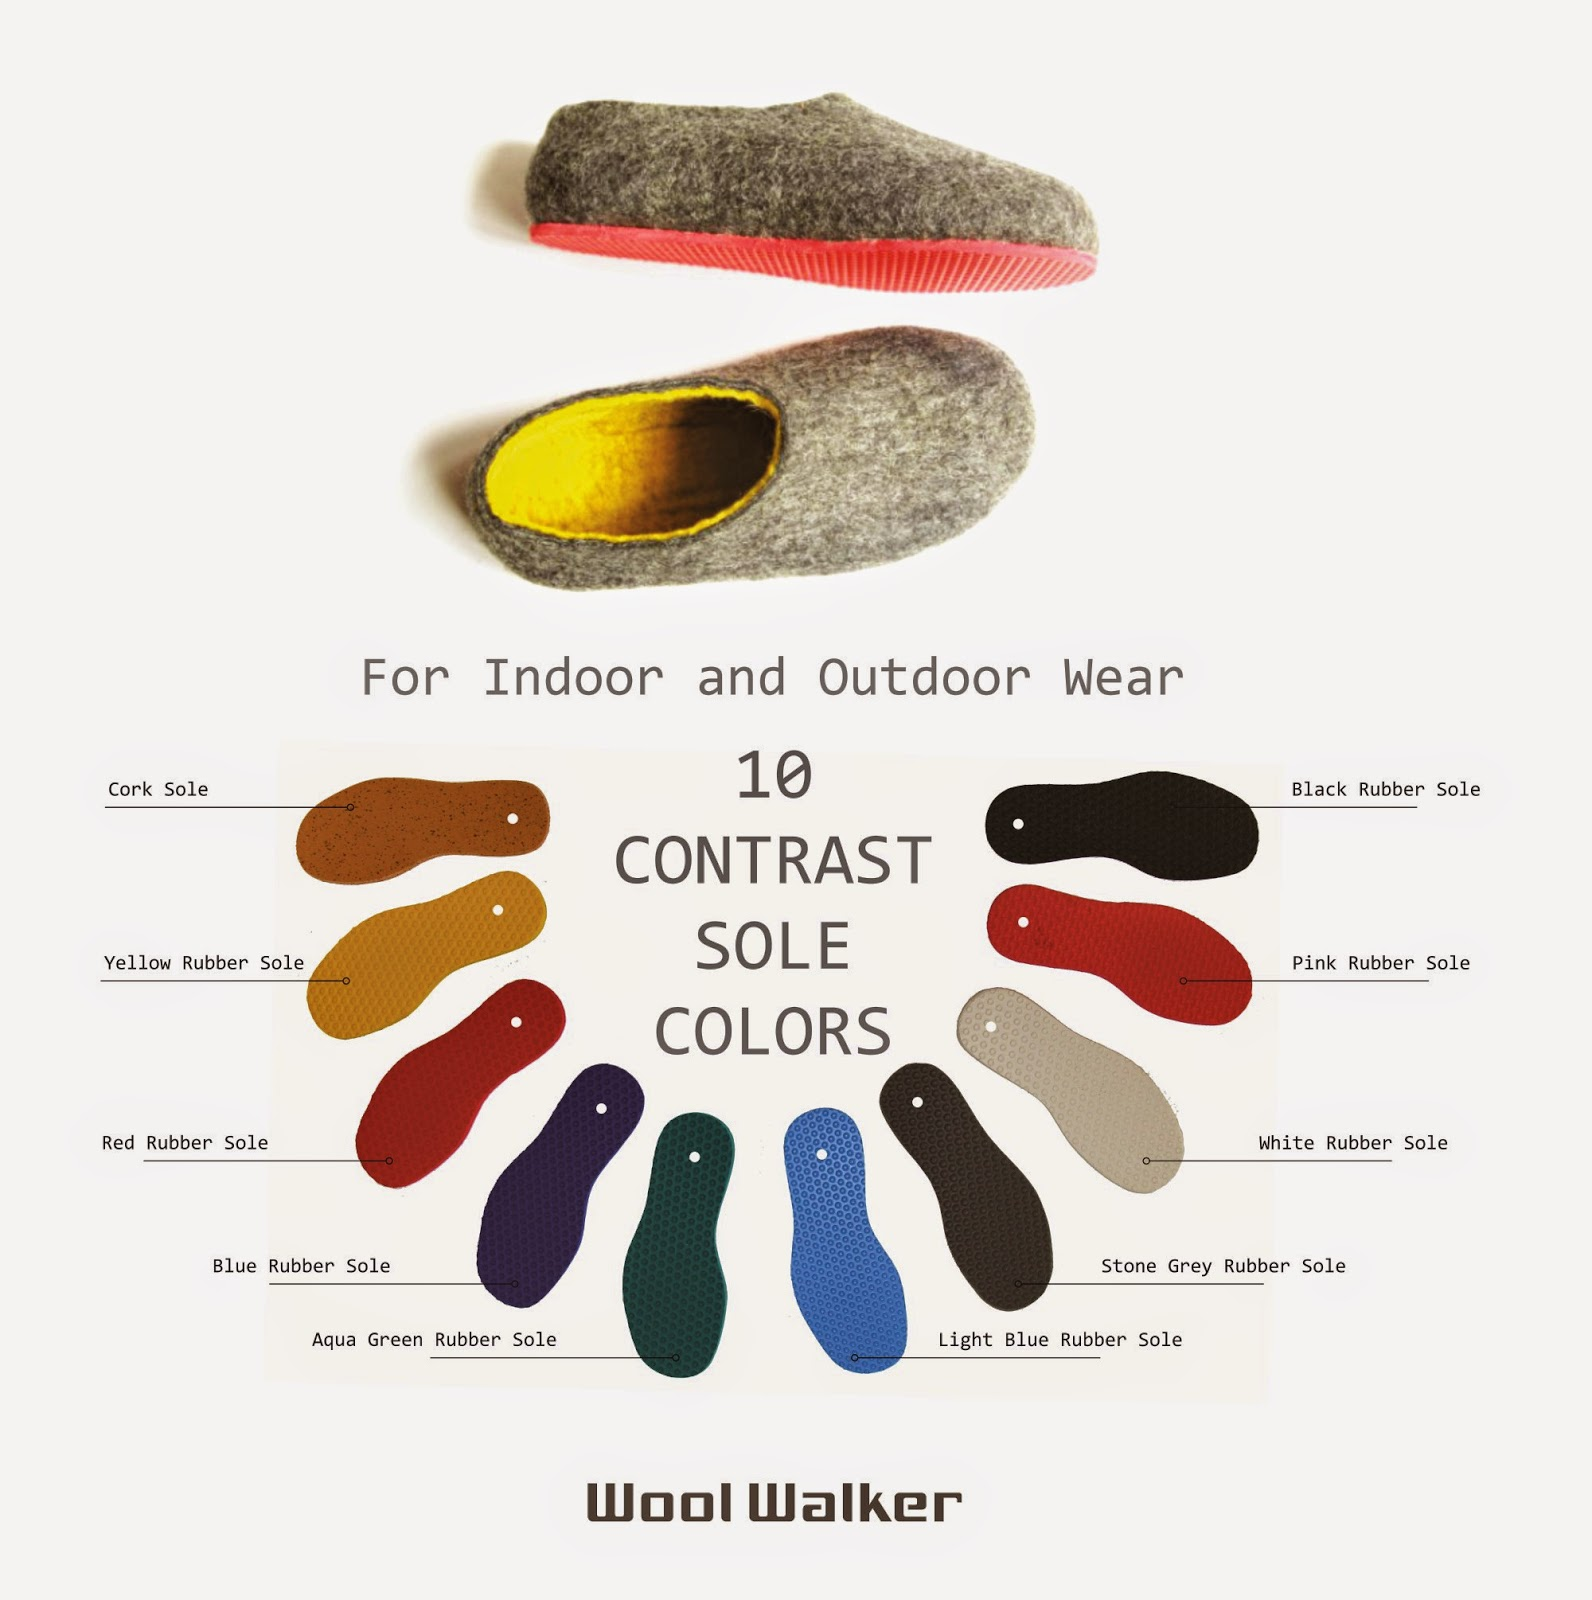 fd41e04a7a95b Felted Wool Slippers, Wool Boots, Cat Beds: 2014